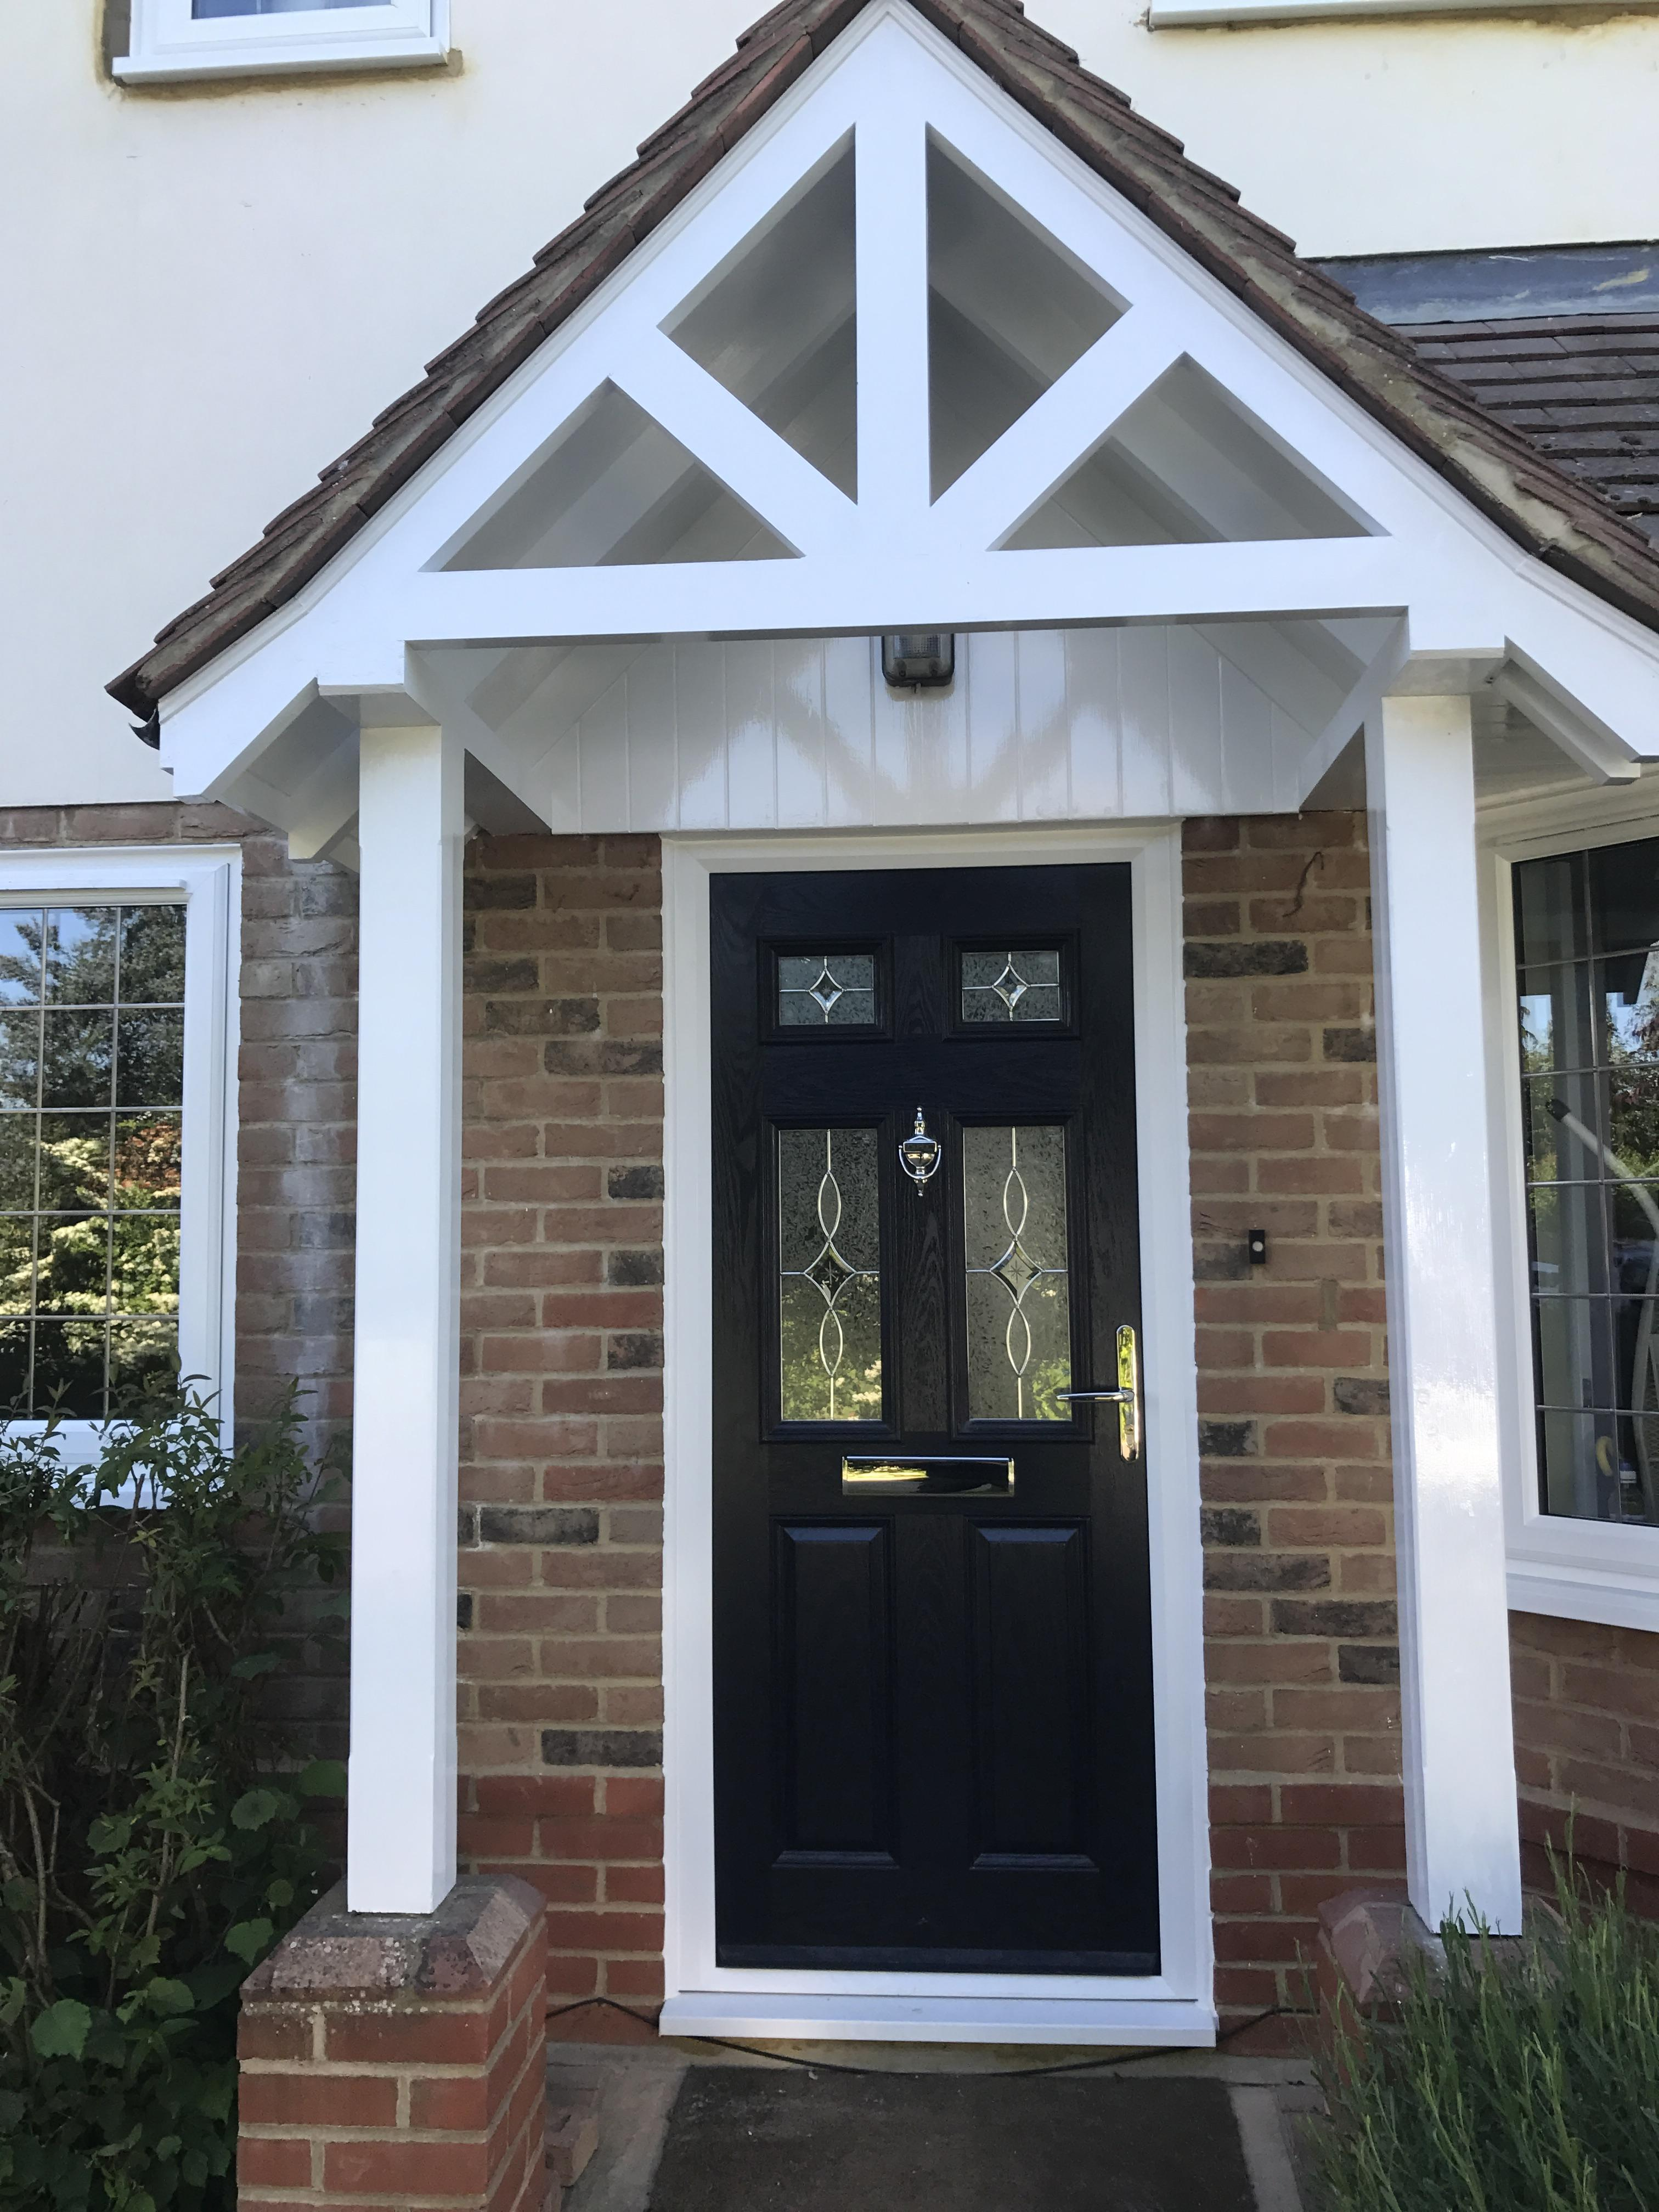 Black High Performance Composite door with glass design and chrome furniture